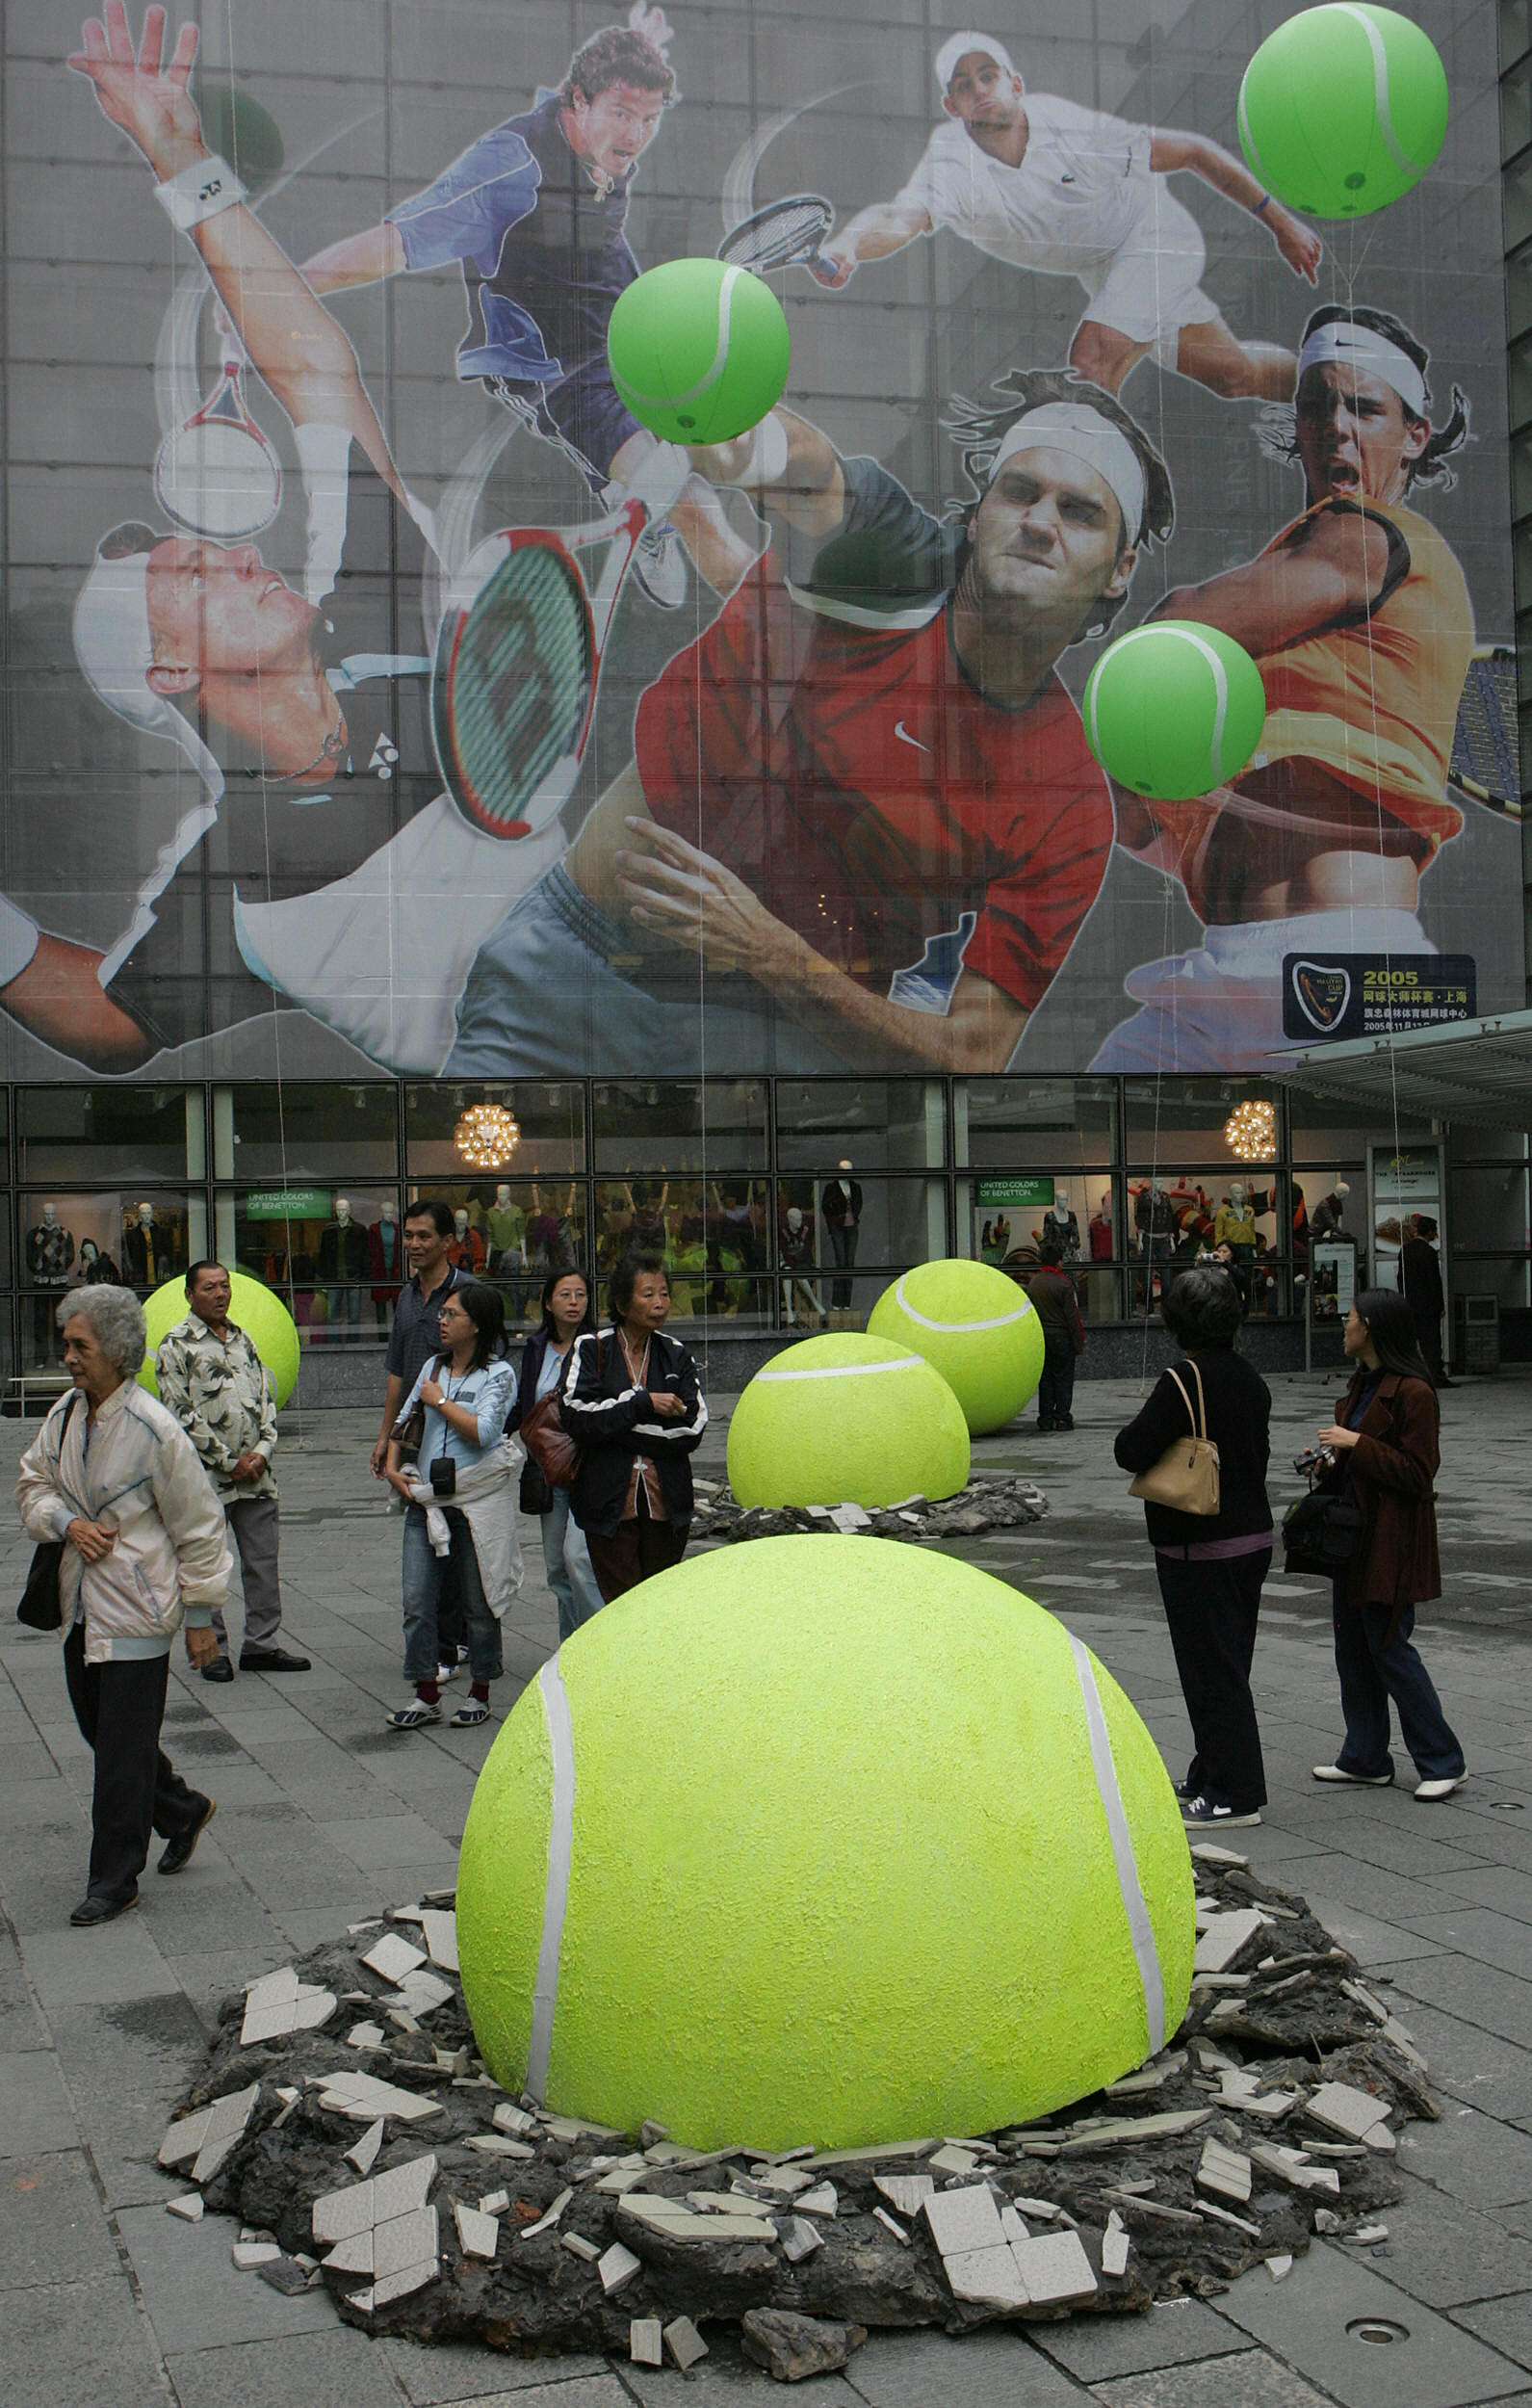 This large tennis display was a unique way to promote the tournament.